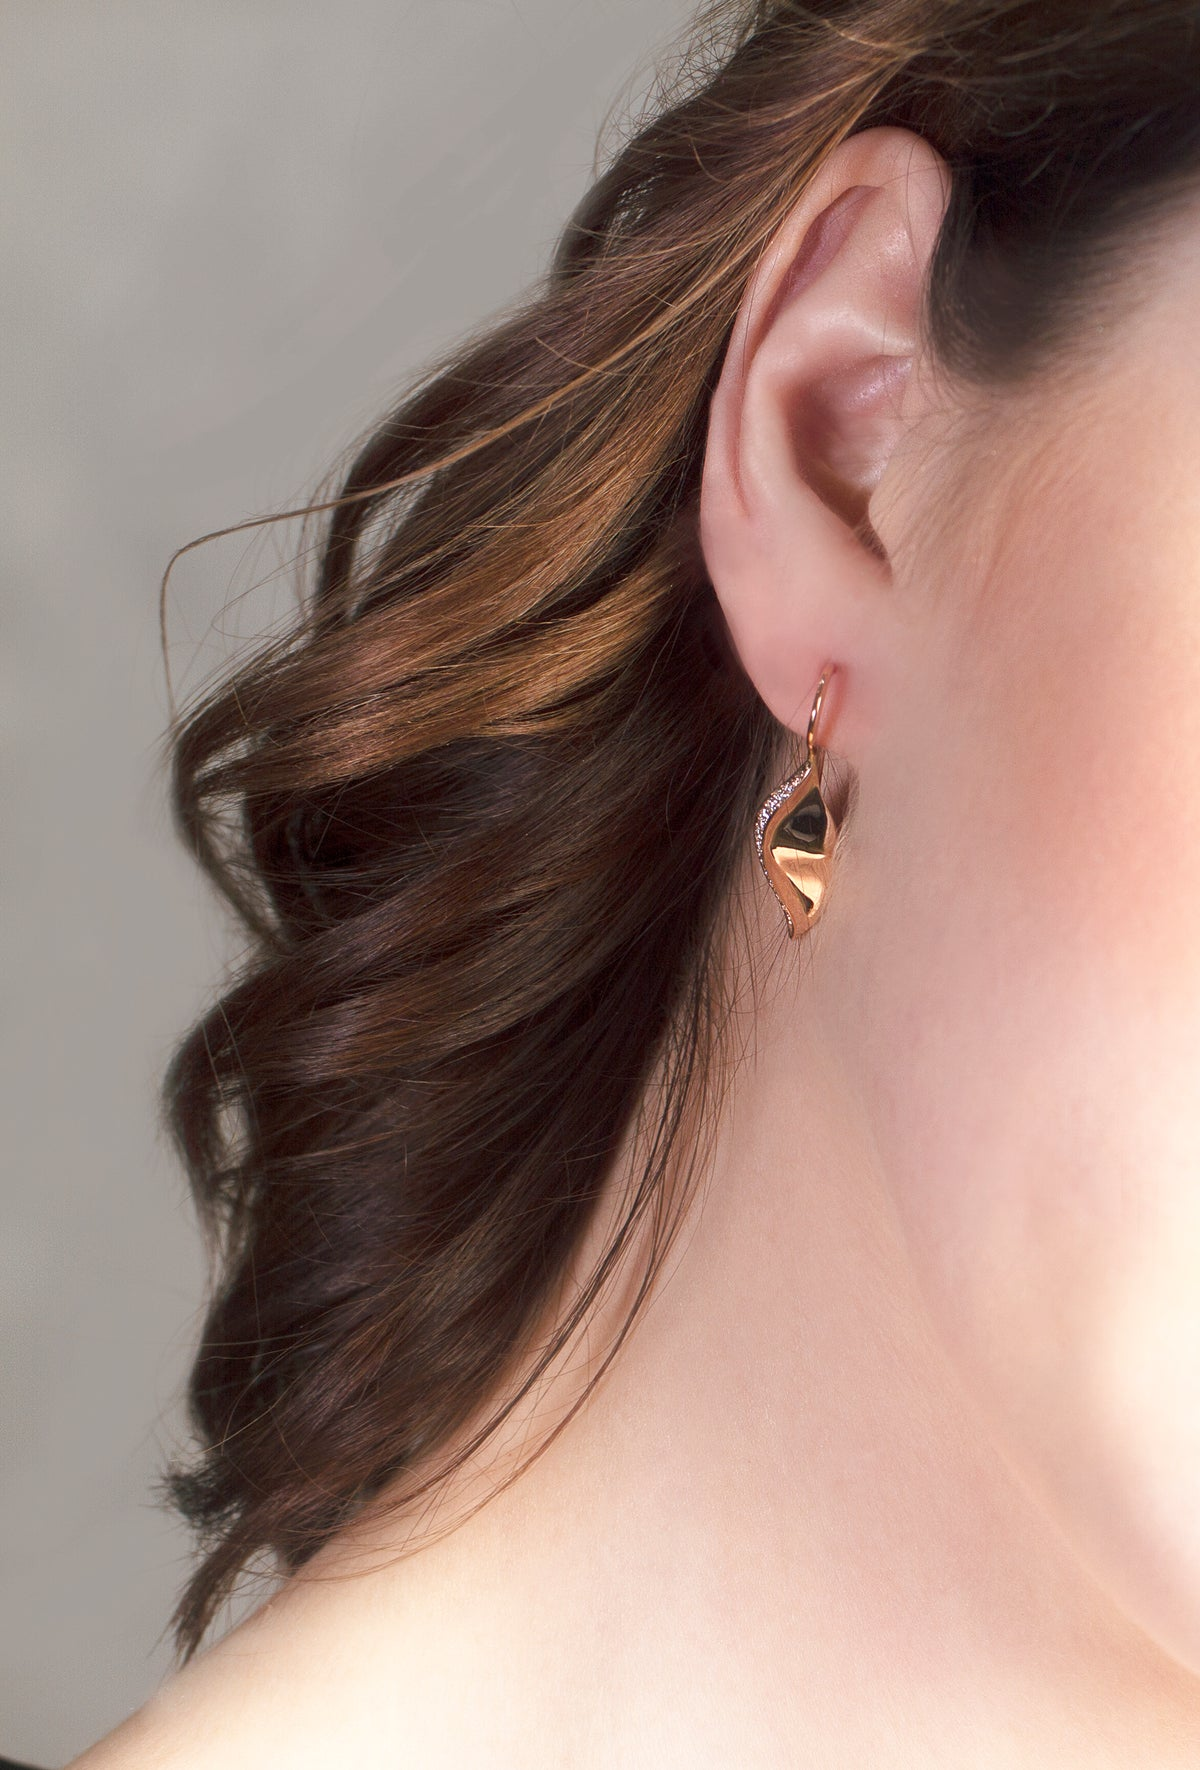 Nurture earrings